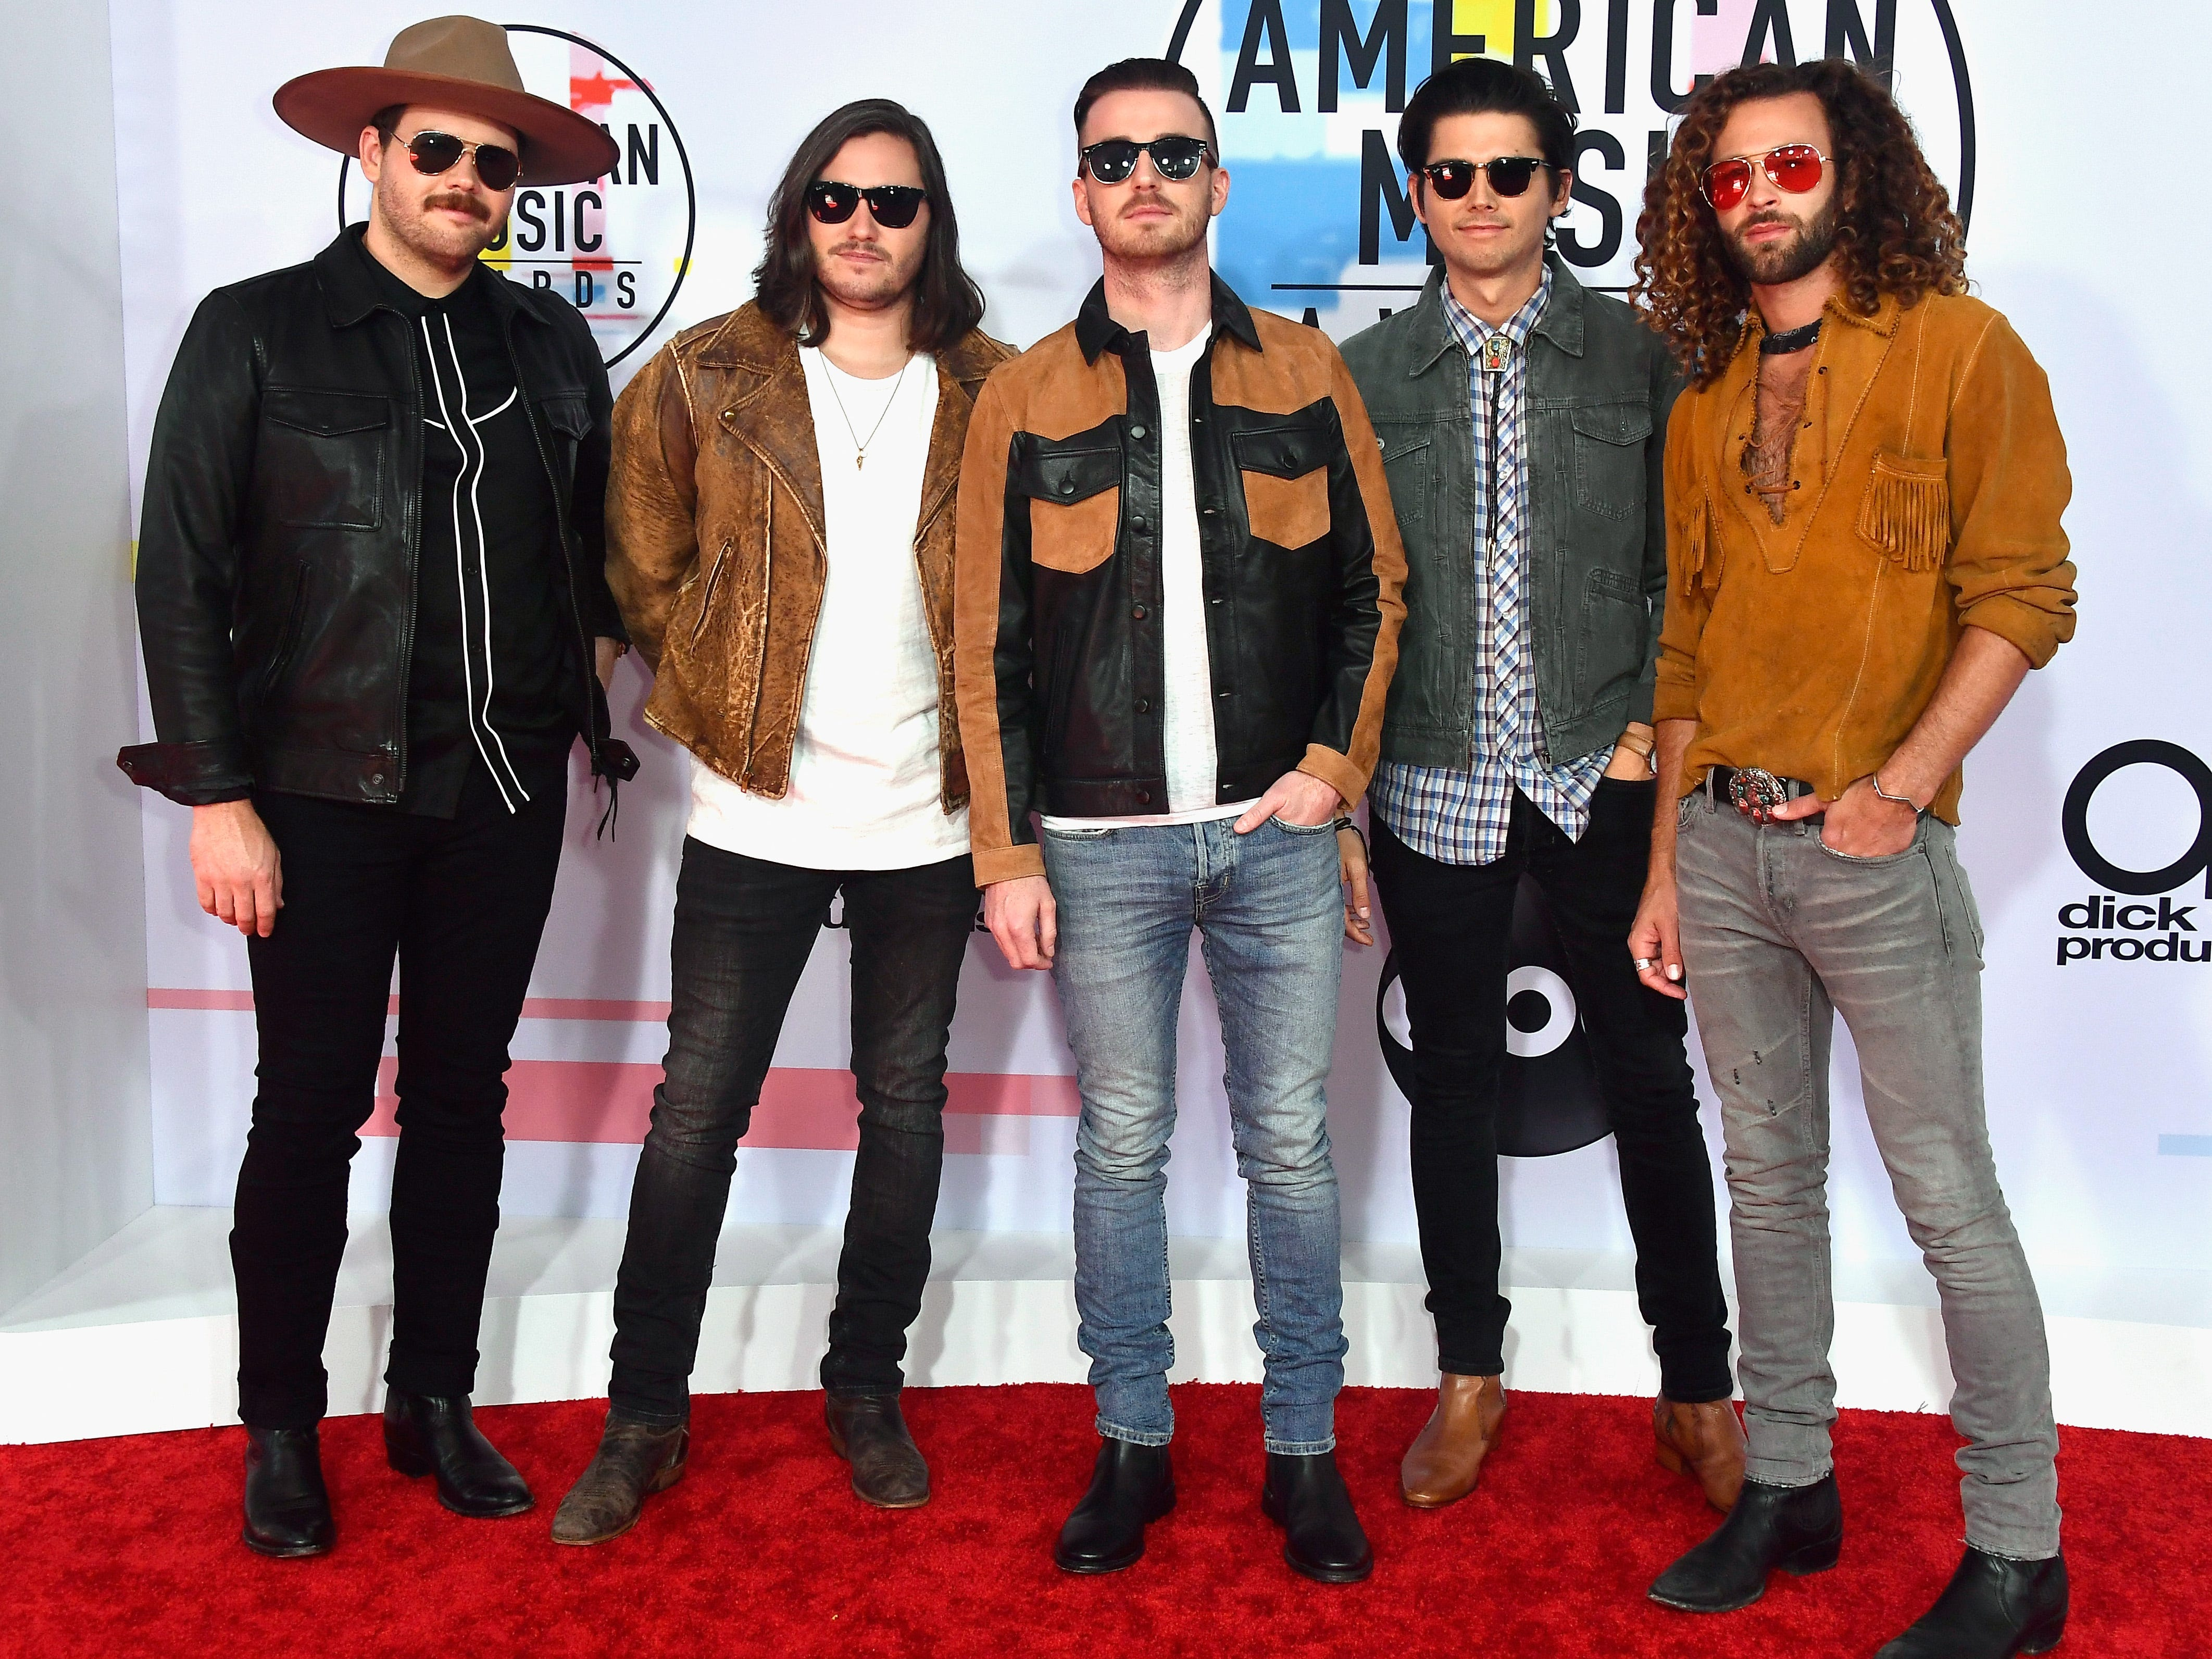 Jared Hampton, Tripp Howell, Brandon Lancaster, Chandler Baldwin, and Eric Steedly of LANCO